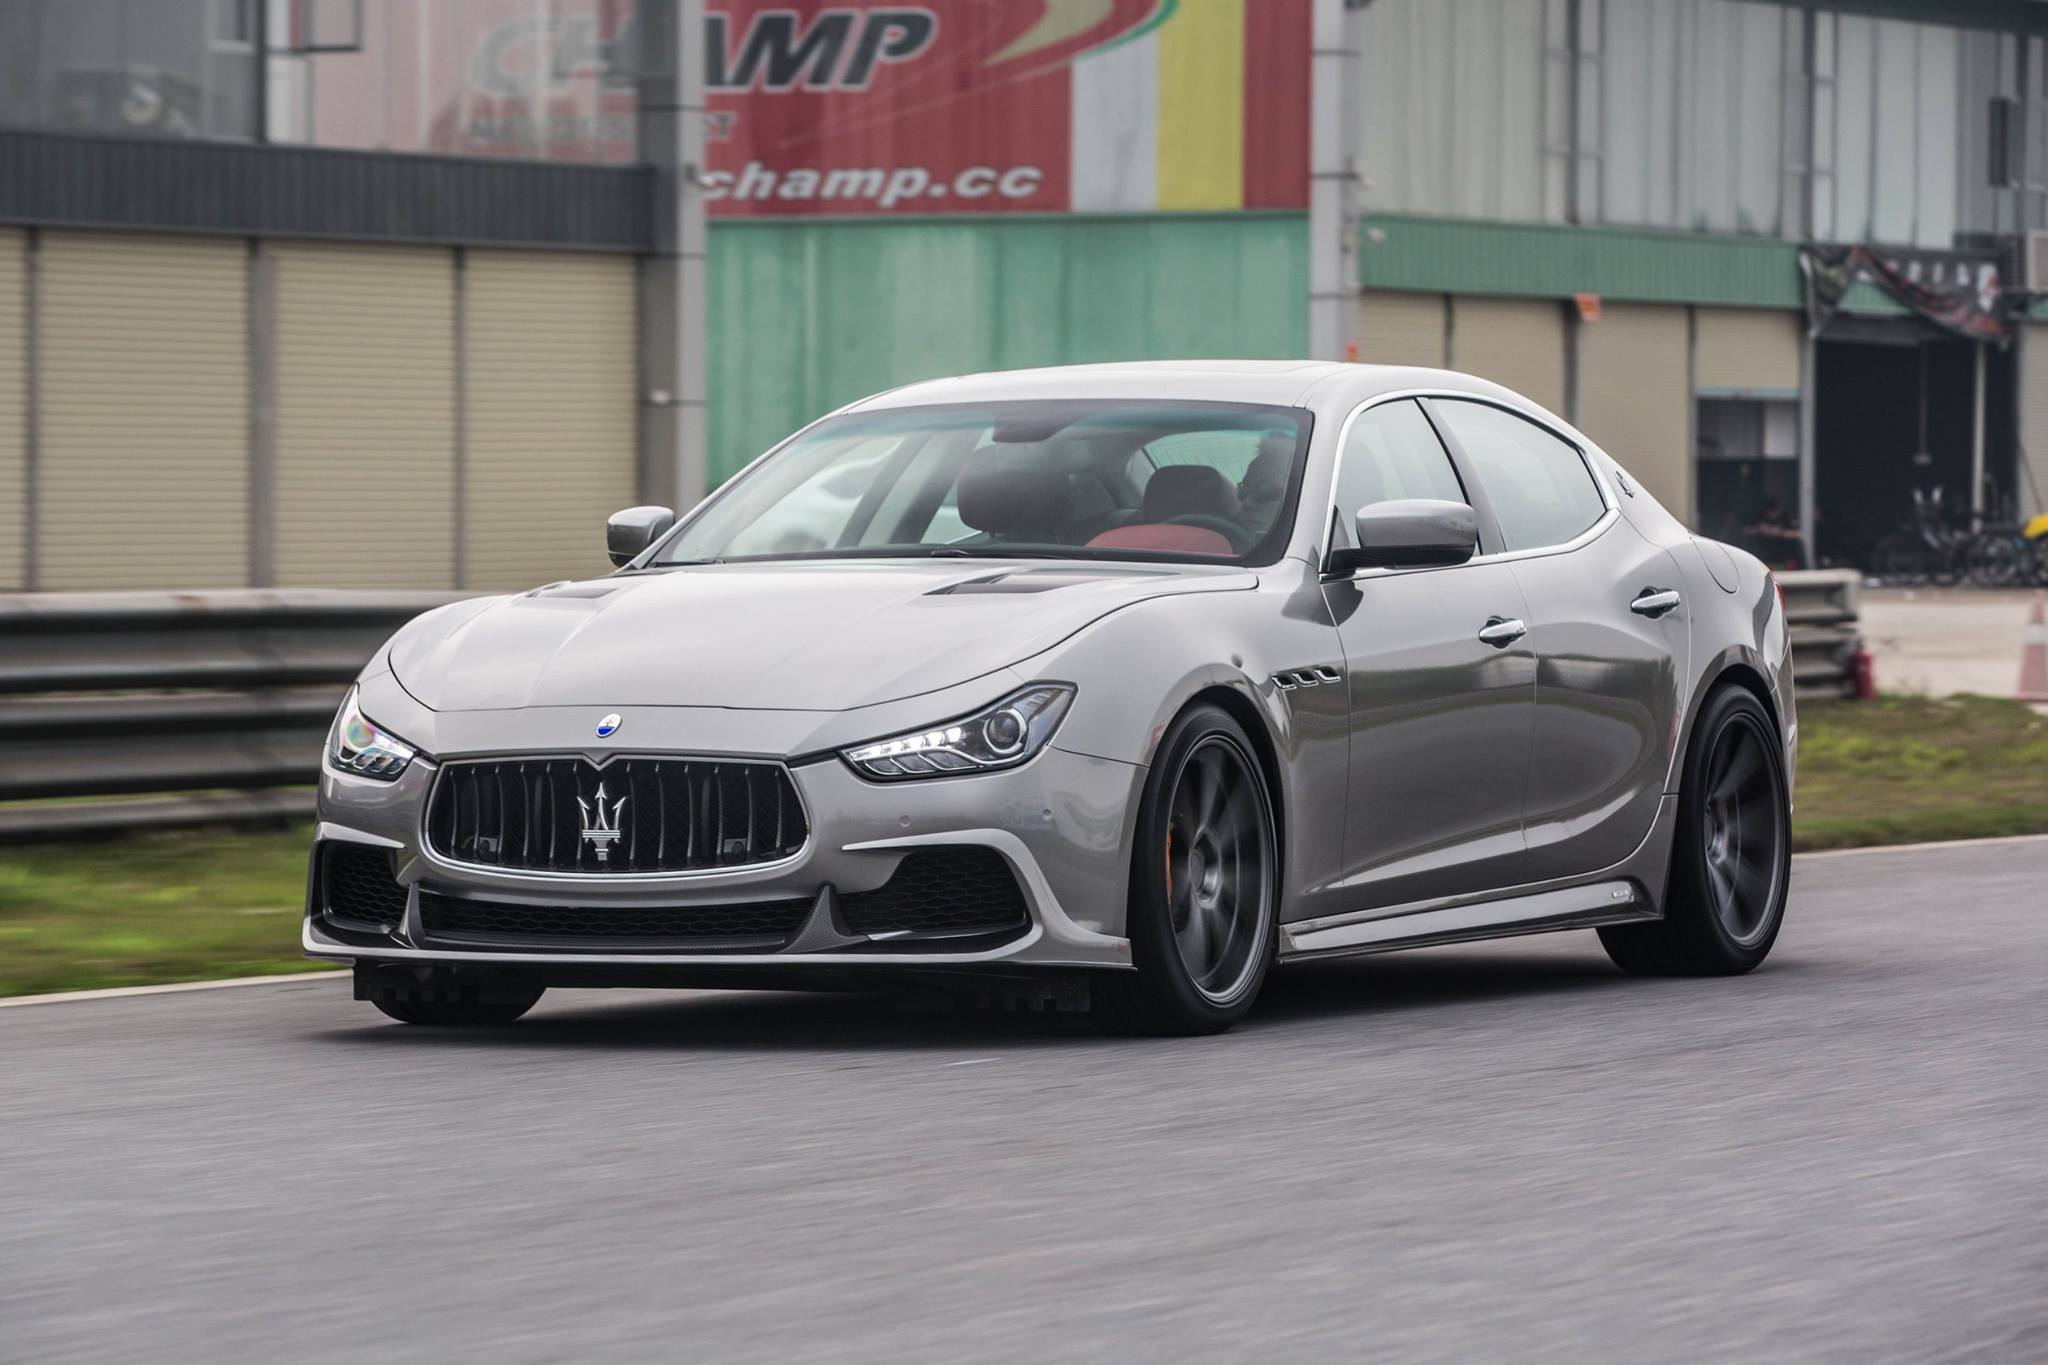 Aspec Maserati Ghibli Carbon Fiber Kit From China Packs